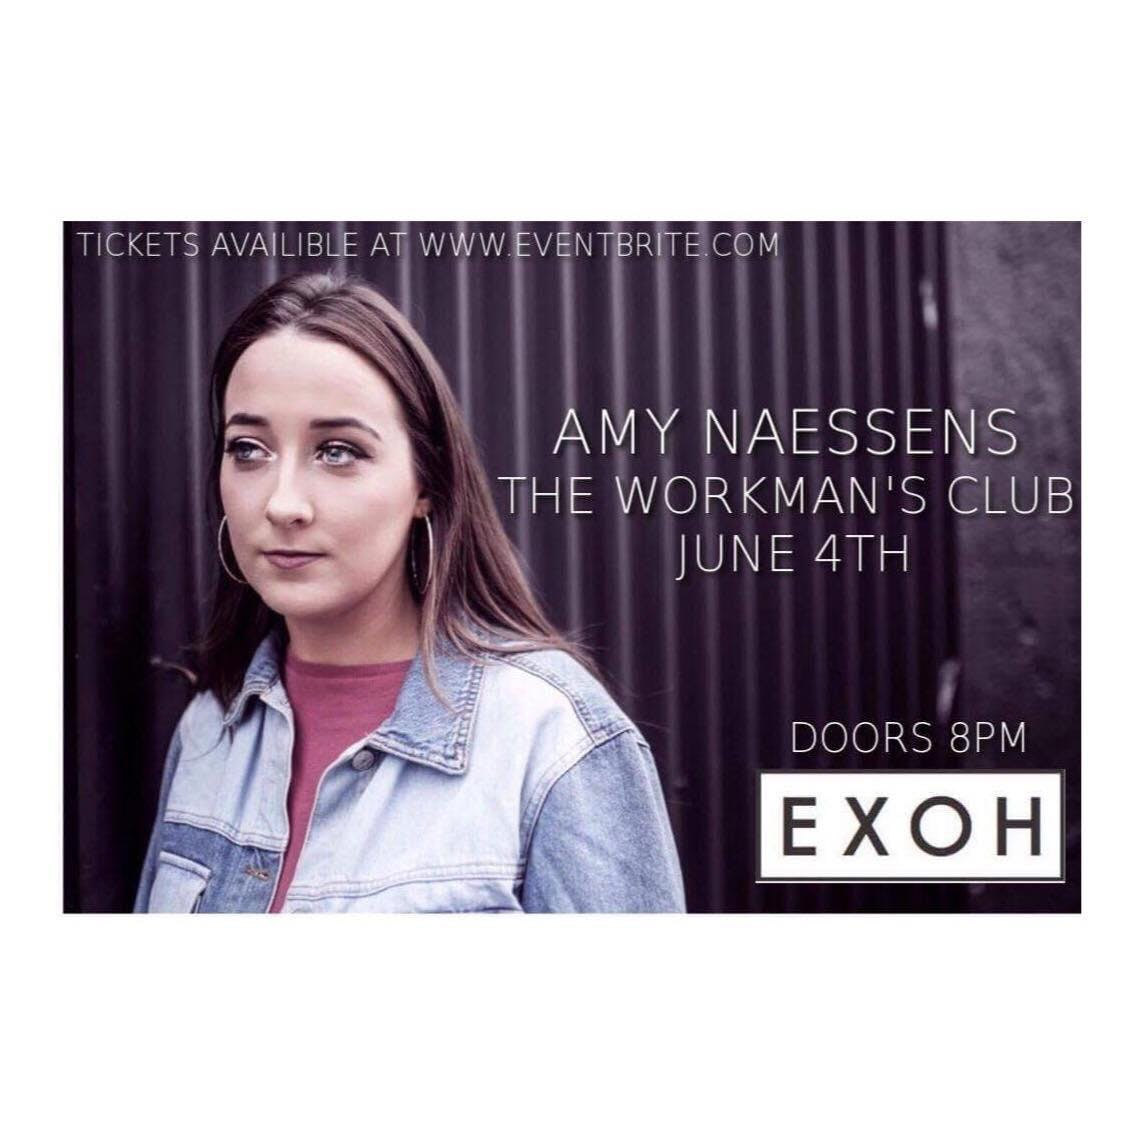 Amy Naessens - Reasons single Launch  Special guests